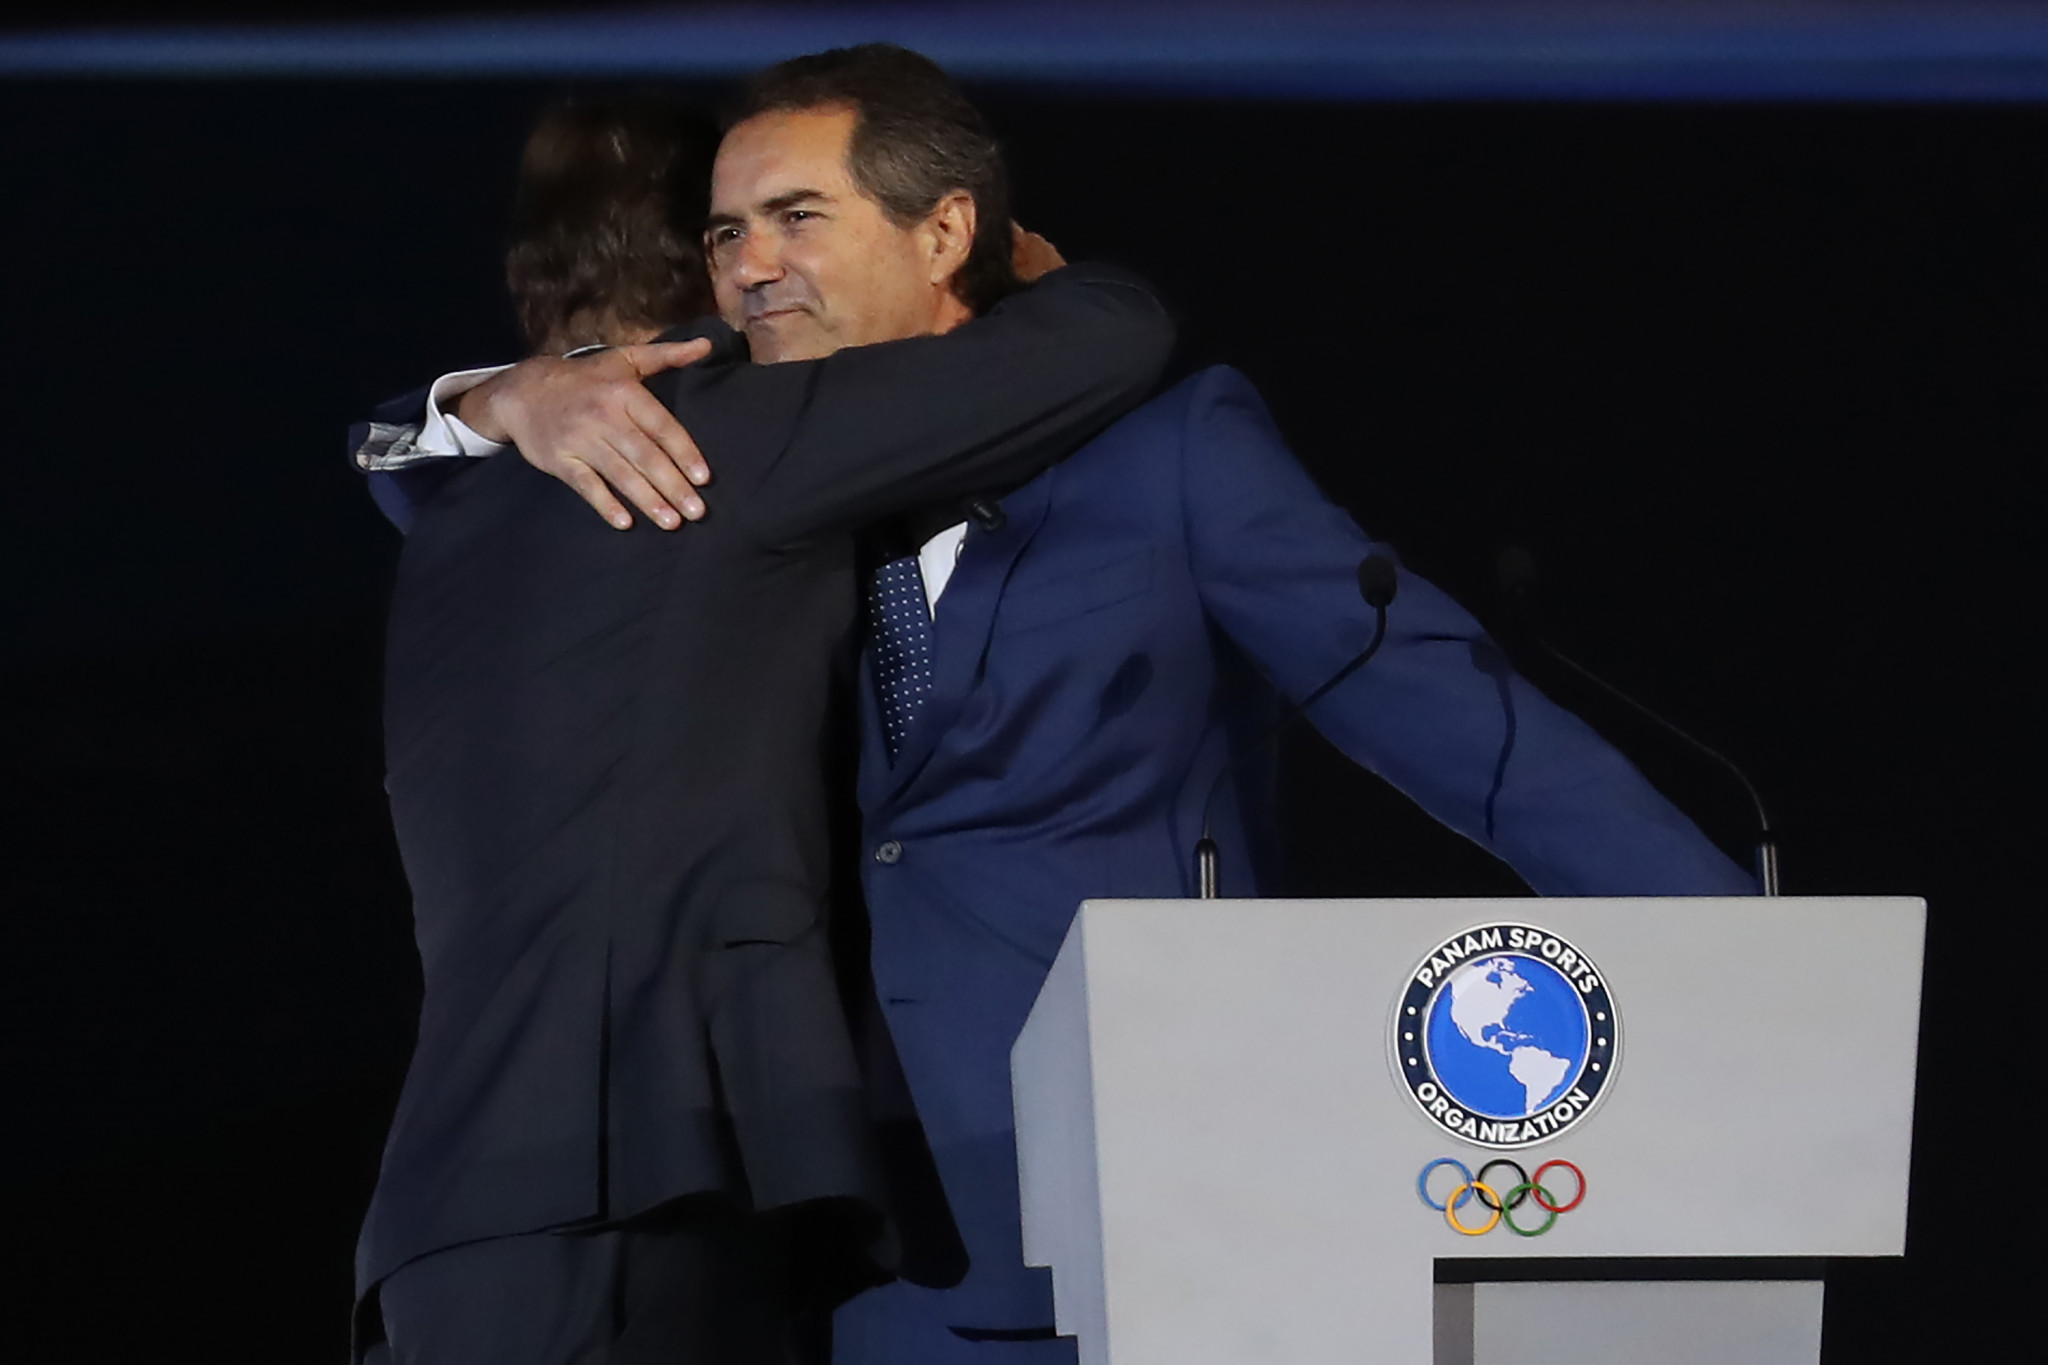 Panam Sports President Neven Ilic congratulated Lima 2019 President Carlos Neuhaus ©Getty Images